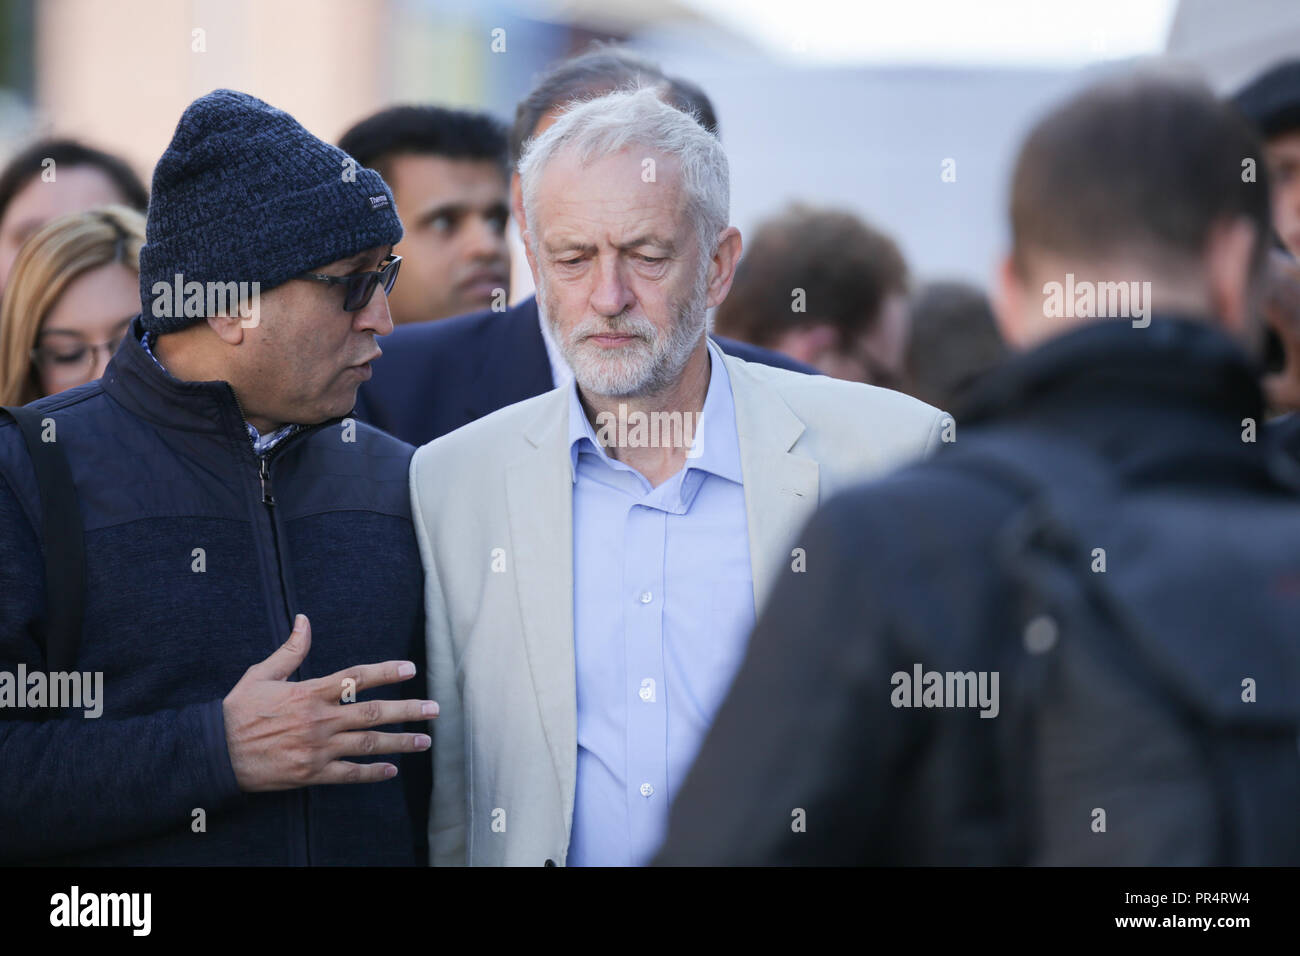 Jeremy CorbynHalesowen, West Midlands, UK. 29th September, 2018. Labour leader Jeremy Corbyn arrives at a rally to gain support for Labour's campaign for the Halesowen and Rowley Regis constituency. Peter Lopeman/Alamy Live News - Stock Image